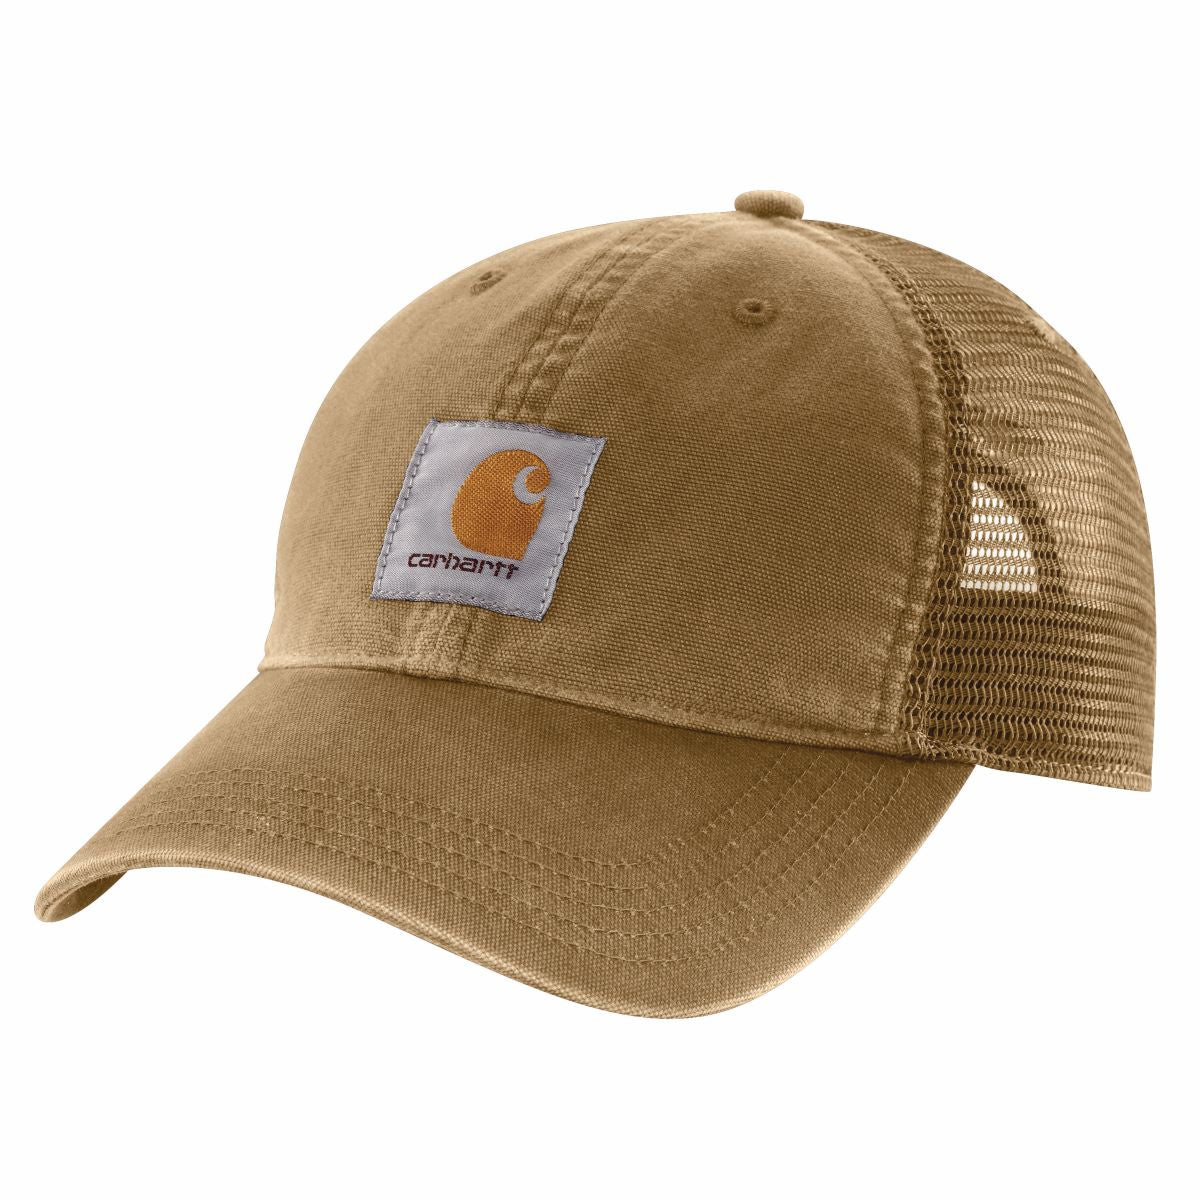 'Carhartt' Unisex Mesh Back Adjustable Cap - Dark Khaki